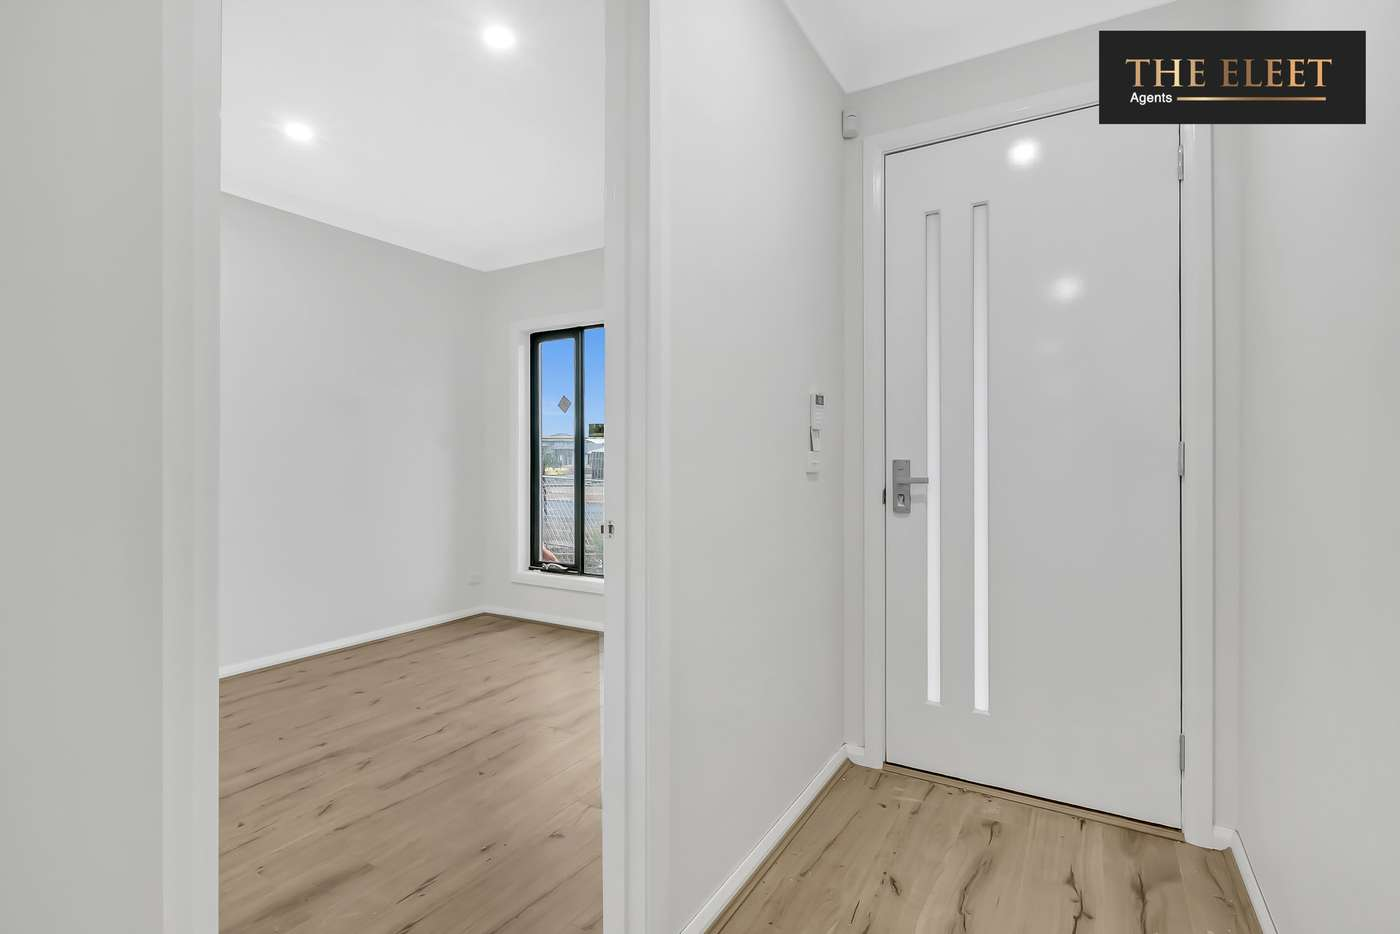 Sixth view of Homely house listing, 11 Kruger St, Tarneit VIC 3029